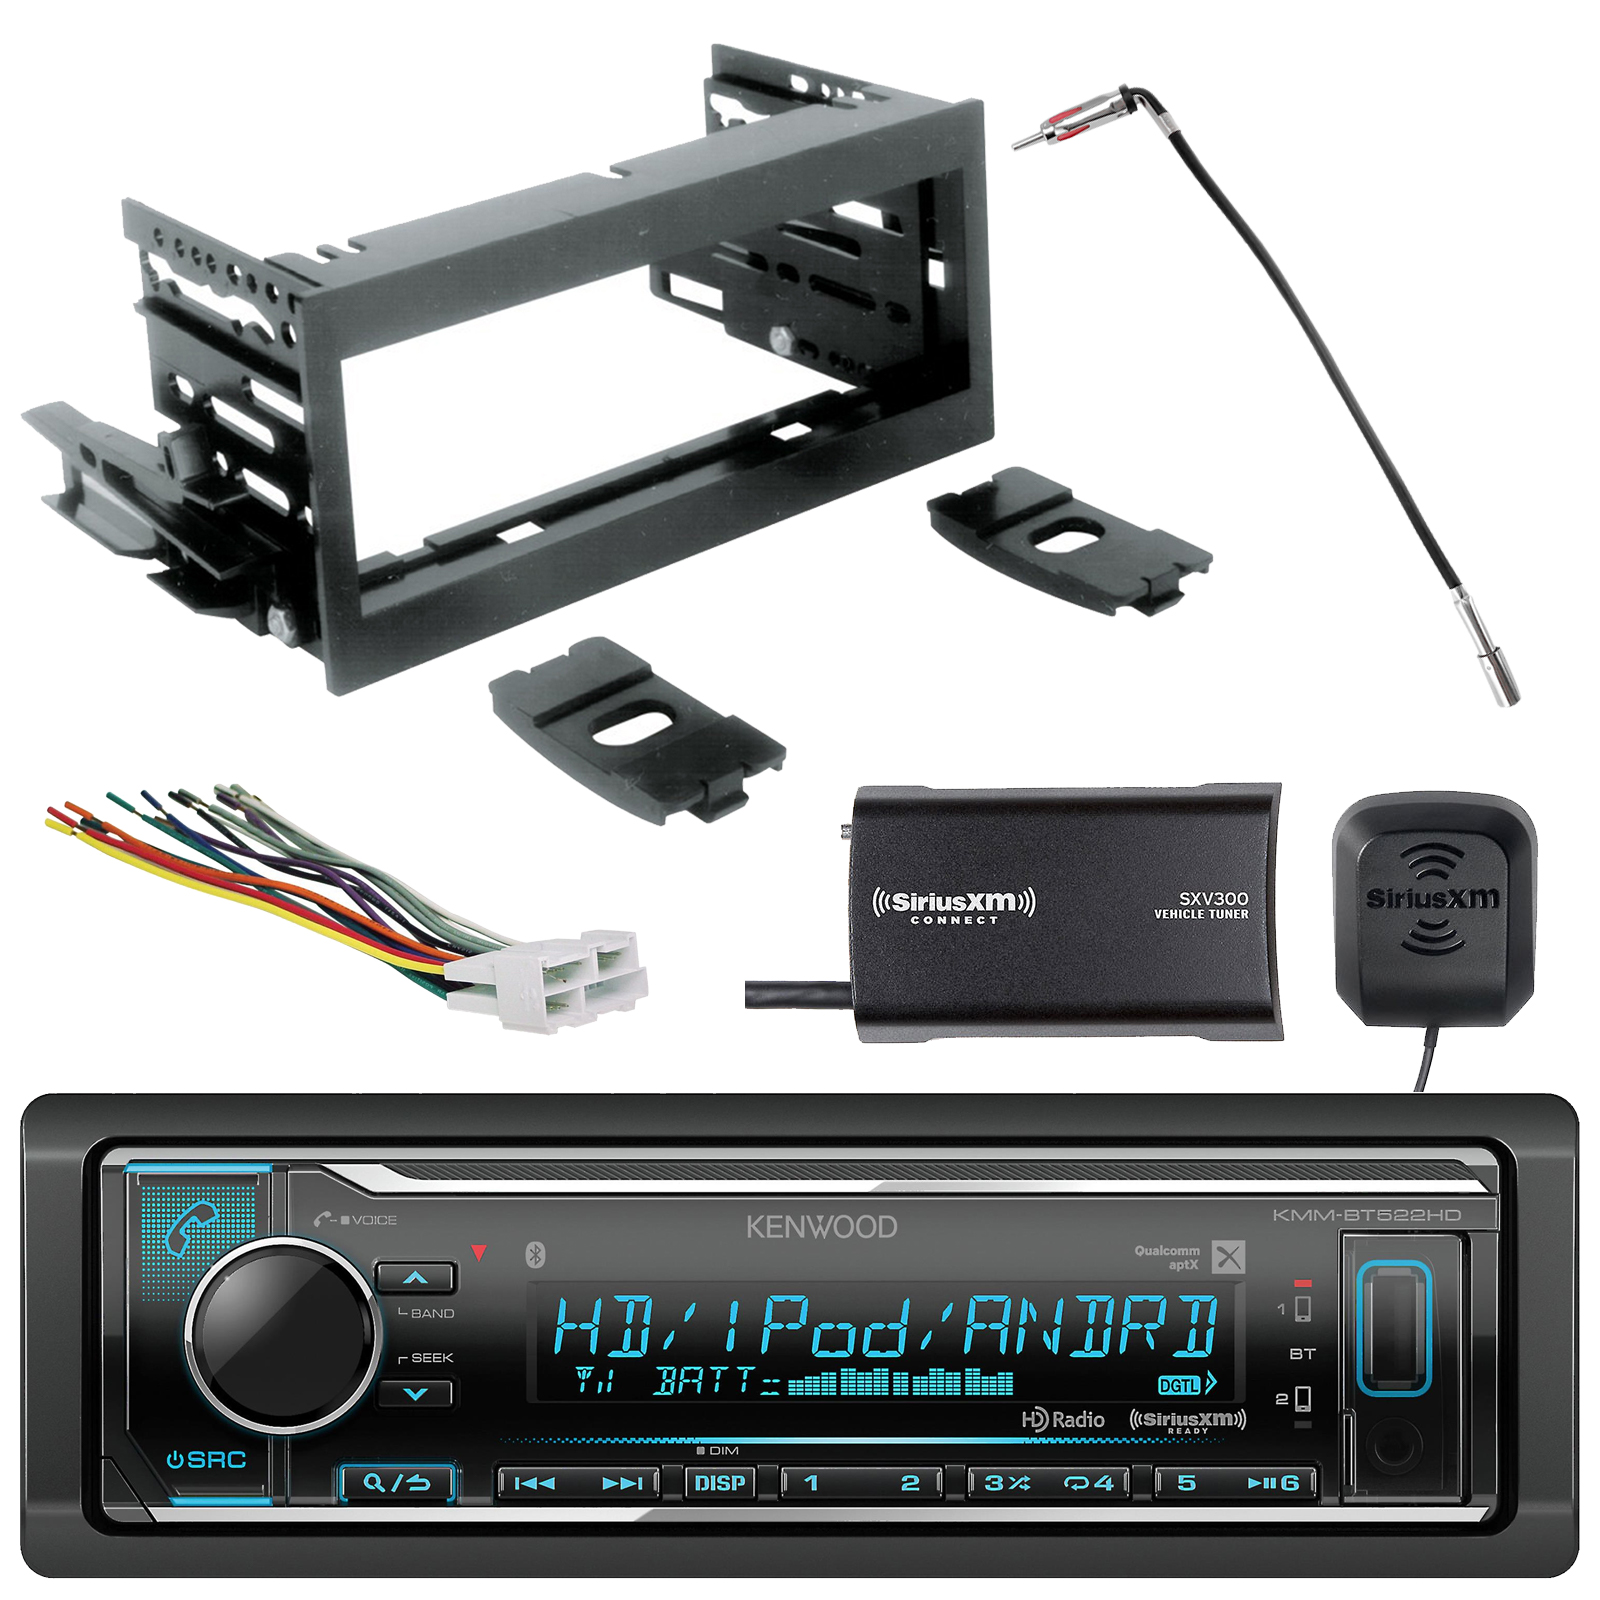 hight resolution of kenwood siriusxm ready in dash bluetooth hd radio scosche gm1483b dash kit gm02b radio wiring harness enrock antenna adapter sirius xm tuner fits 95 02